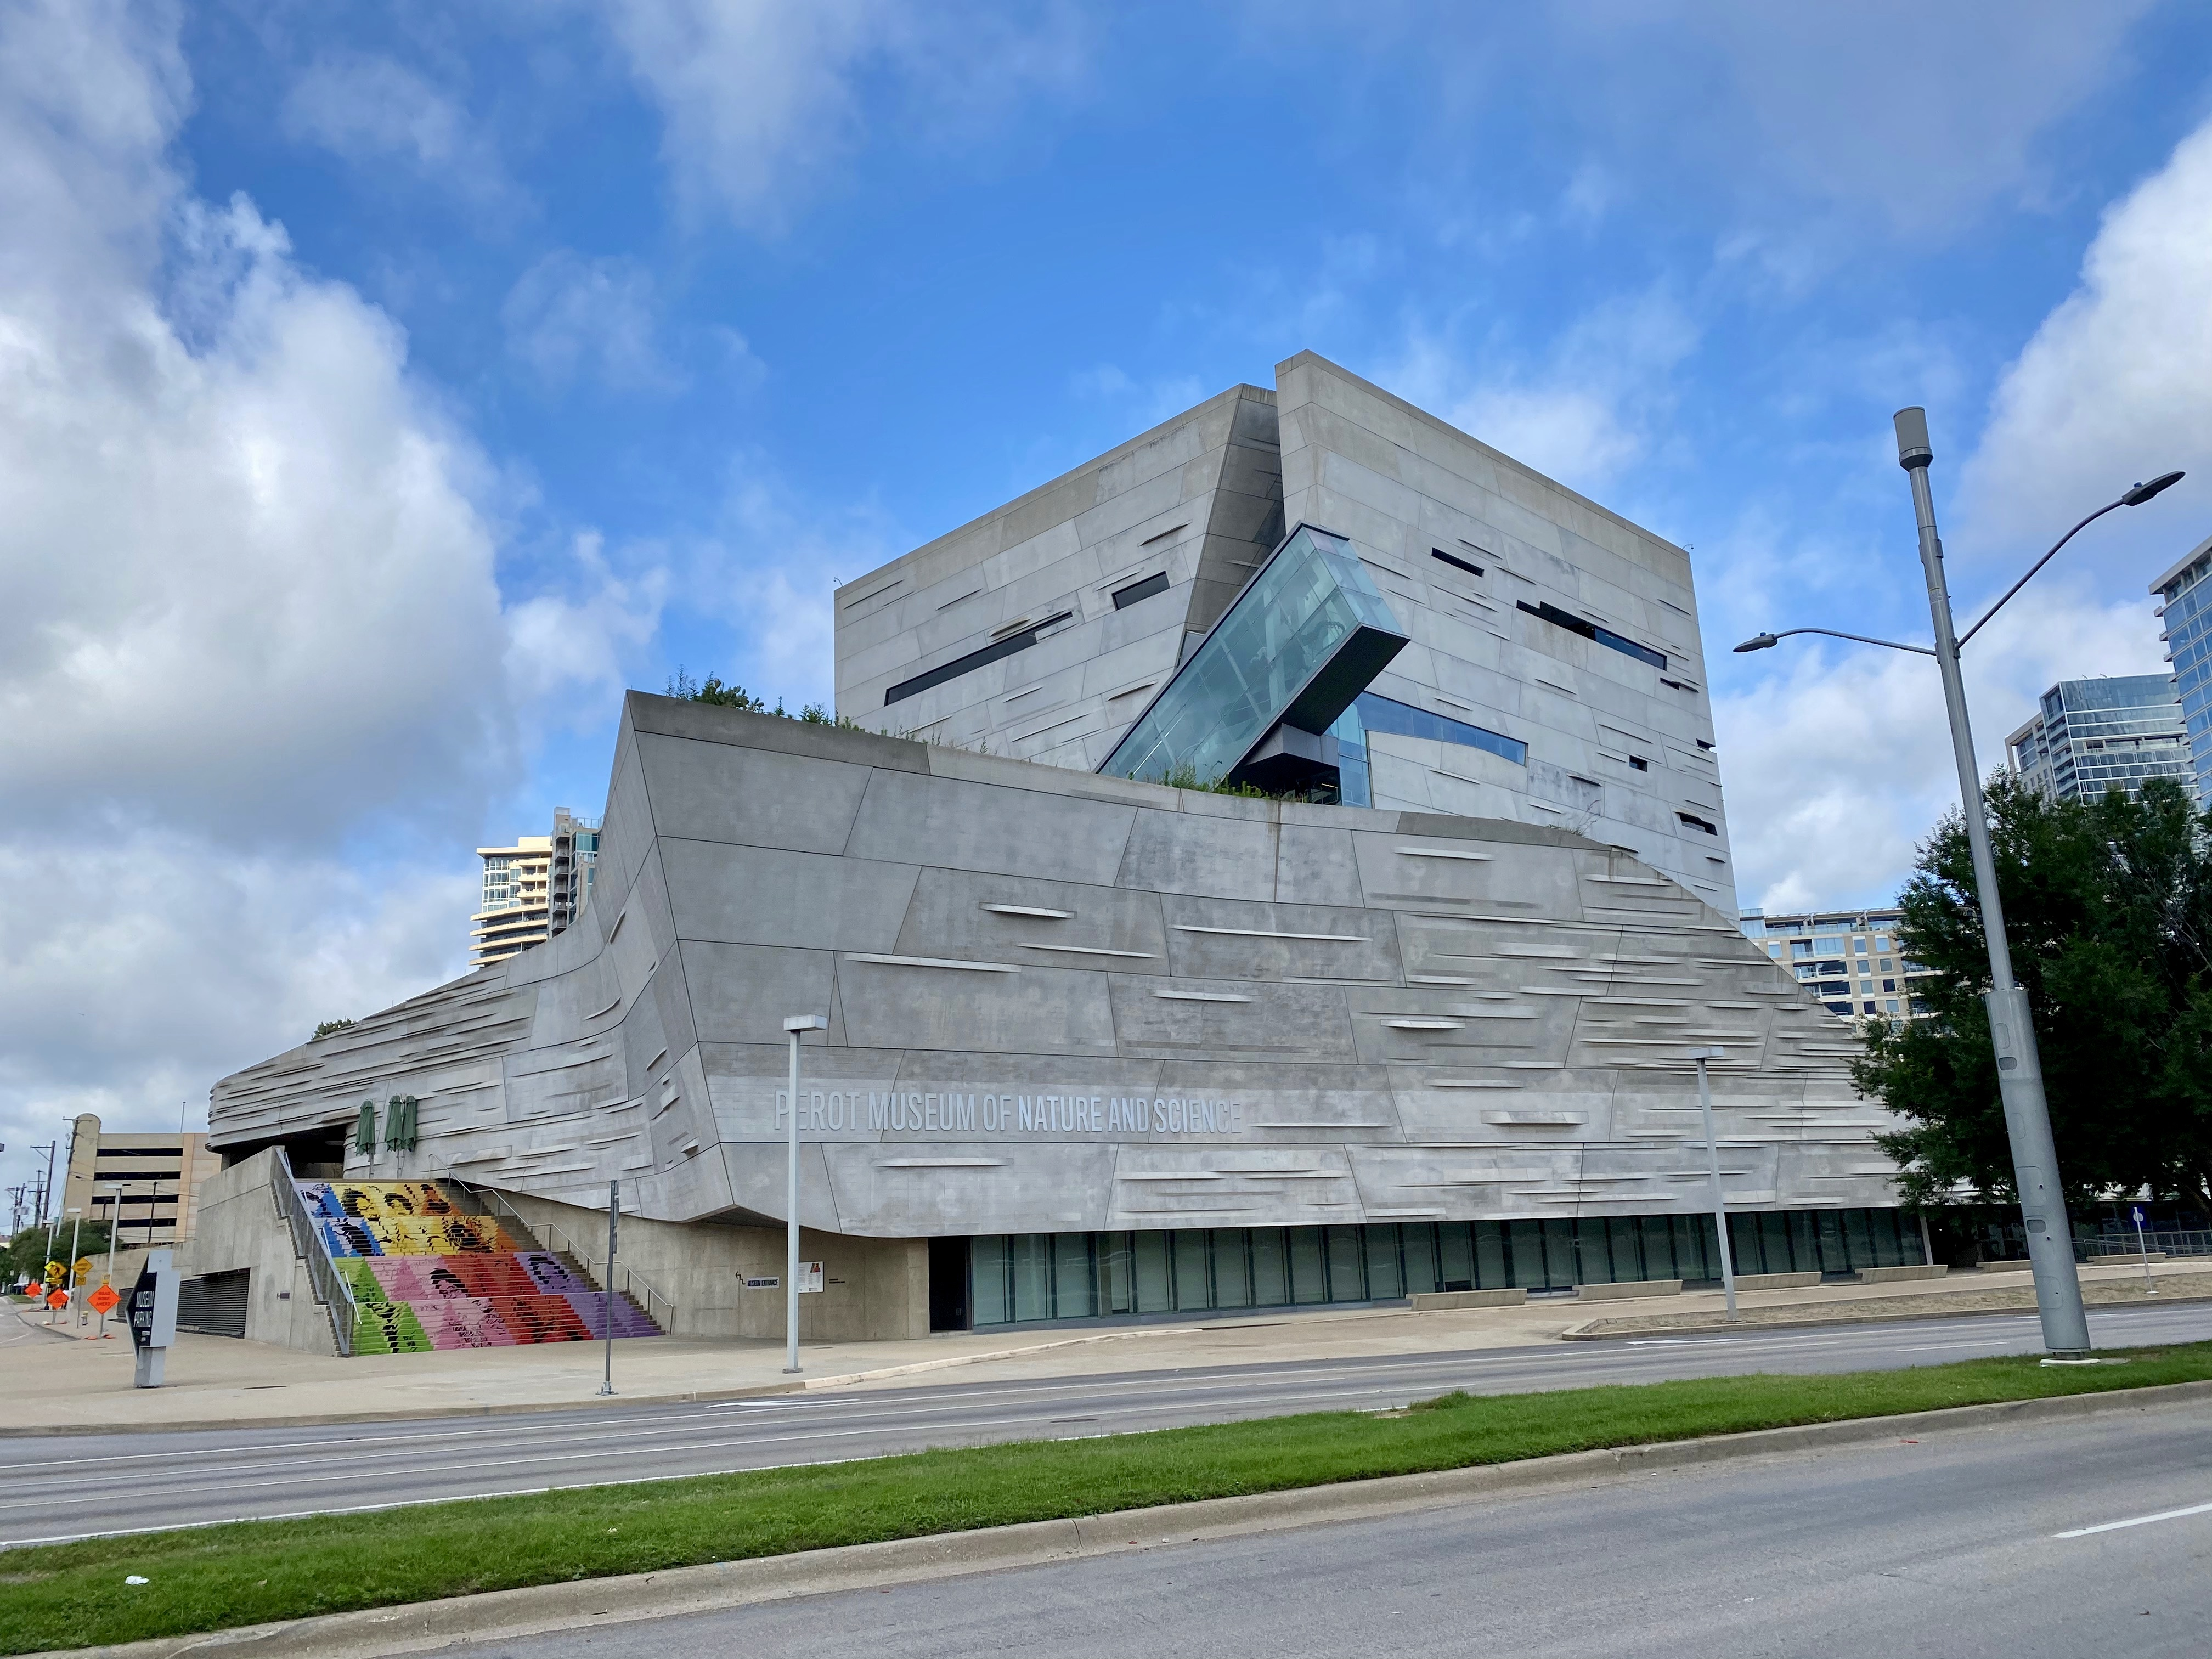 Perot Museum of Nature and Science in Dallas, TX